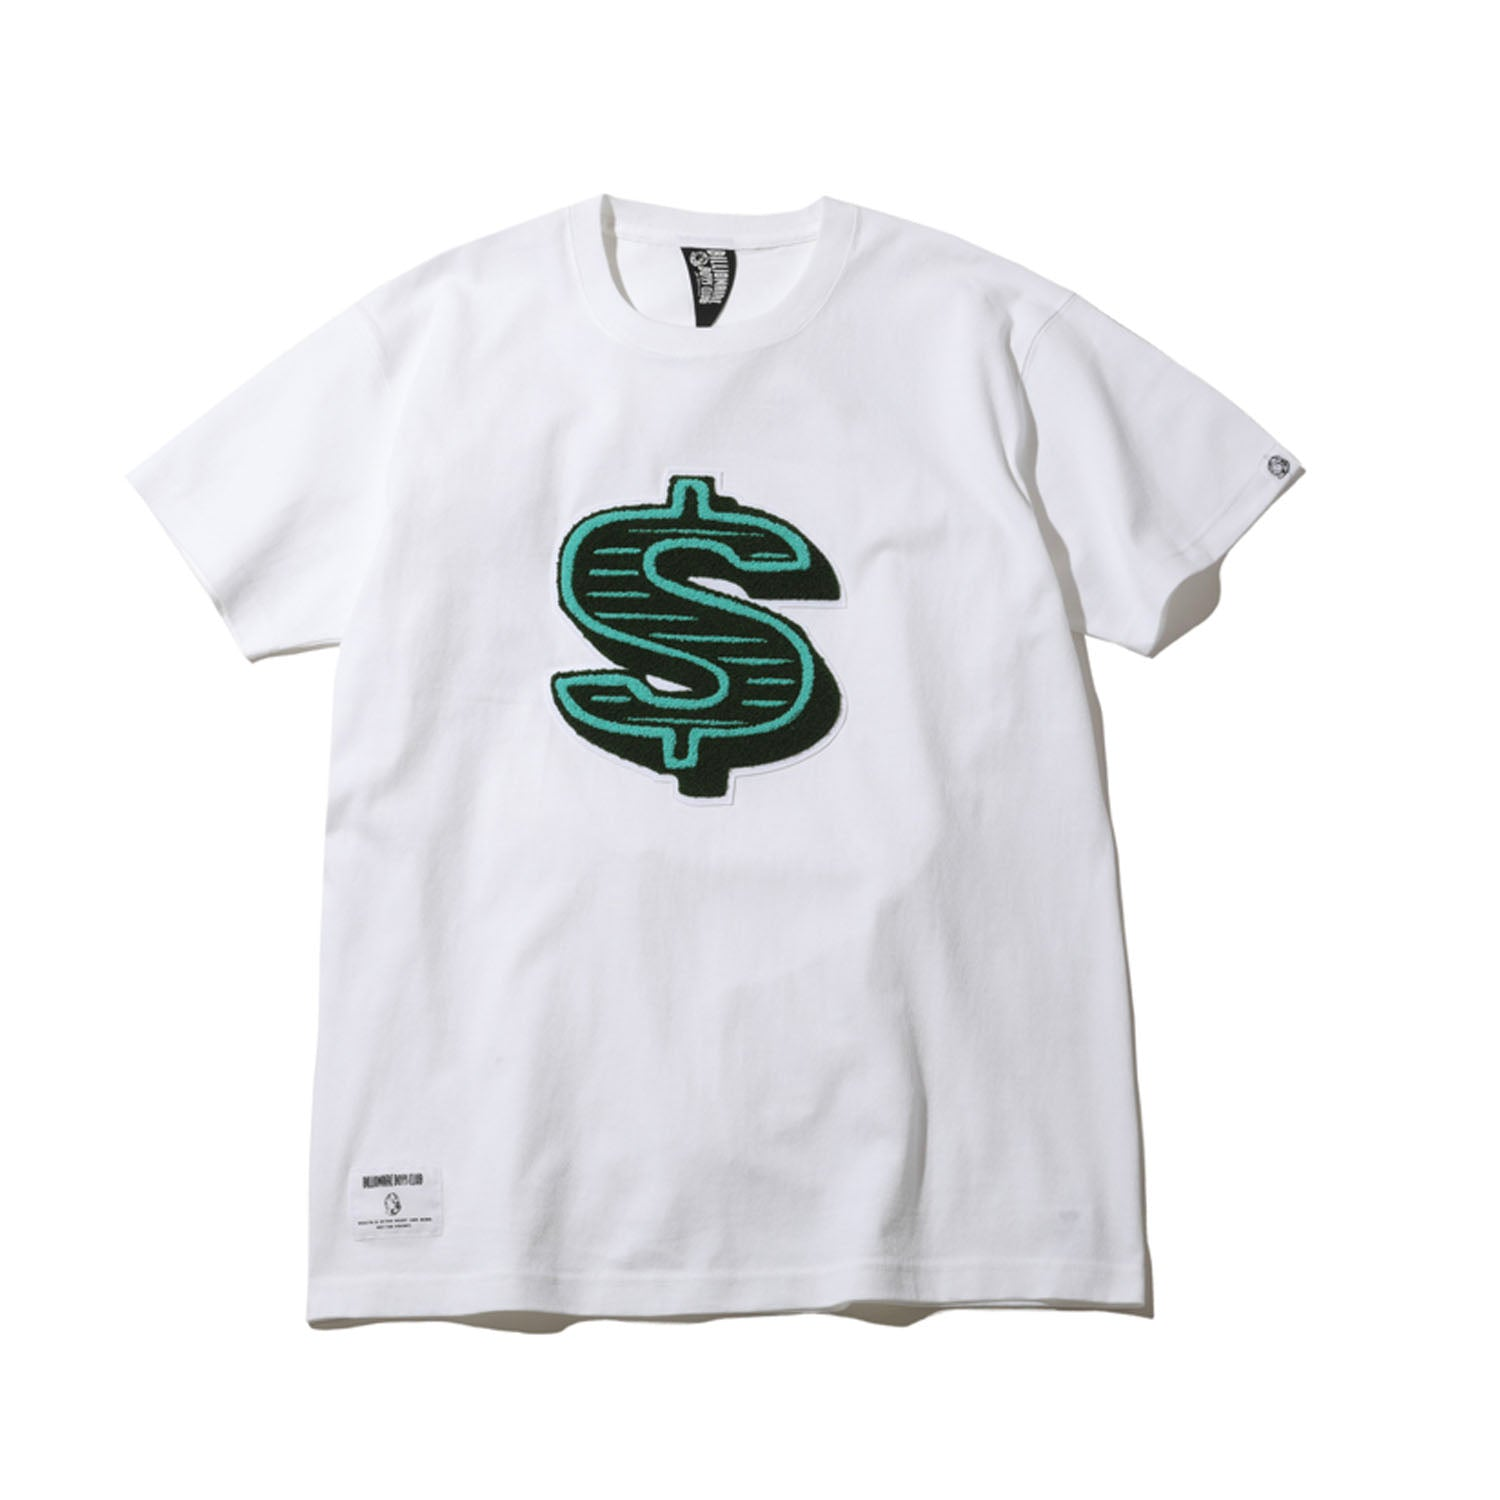 DOLLAR CHENILLE PATCH T-SHIRT